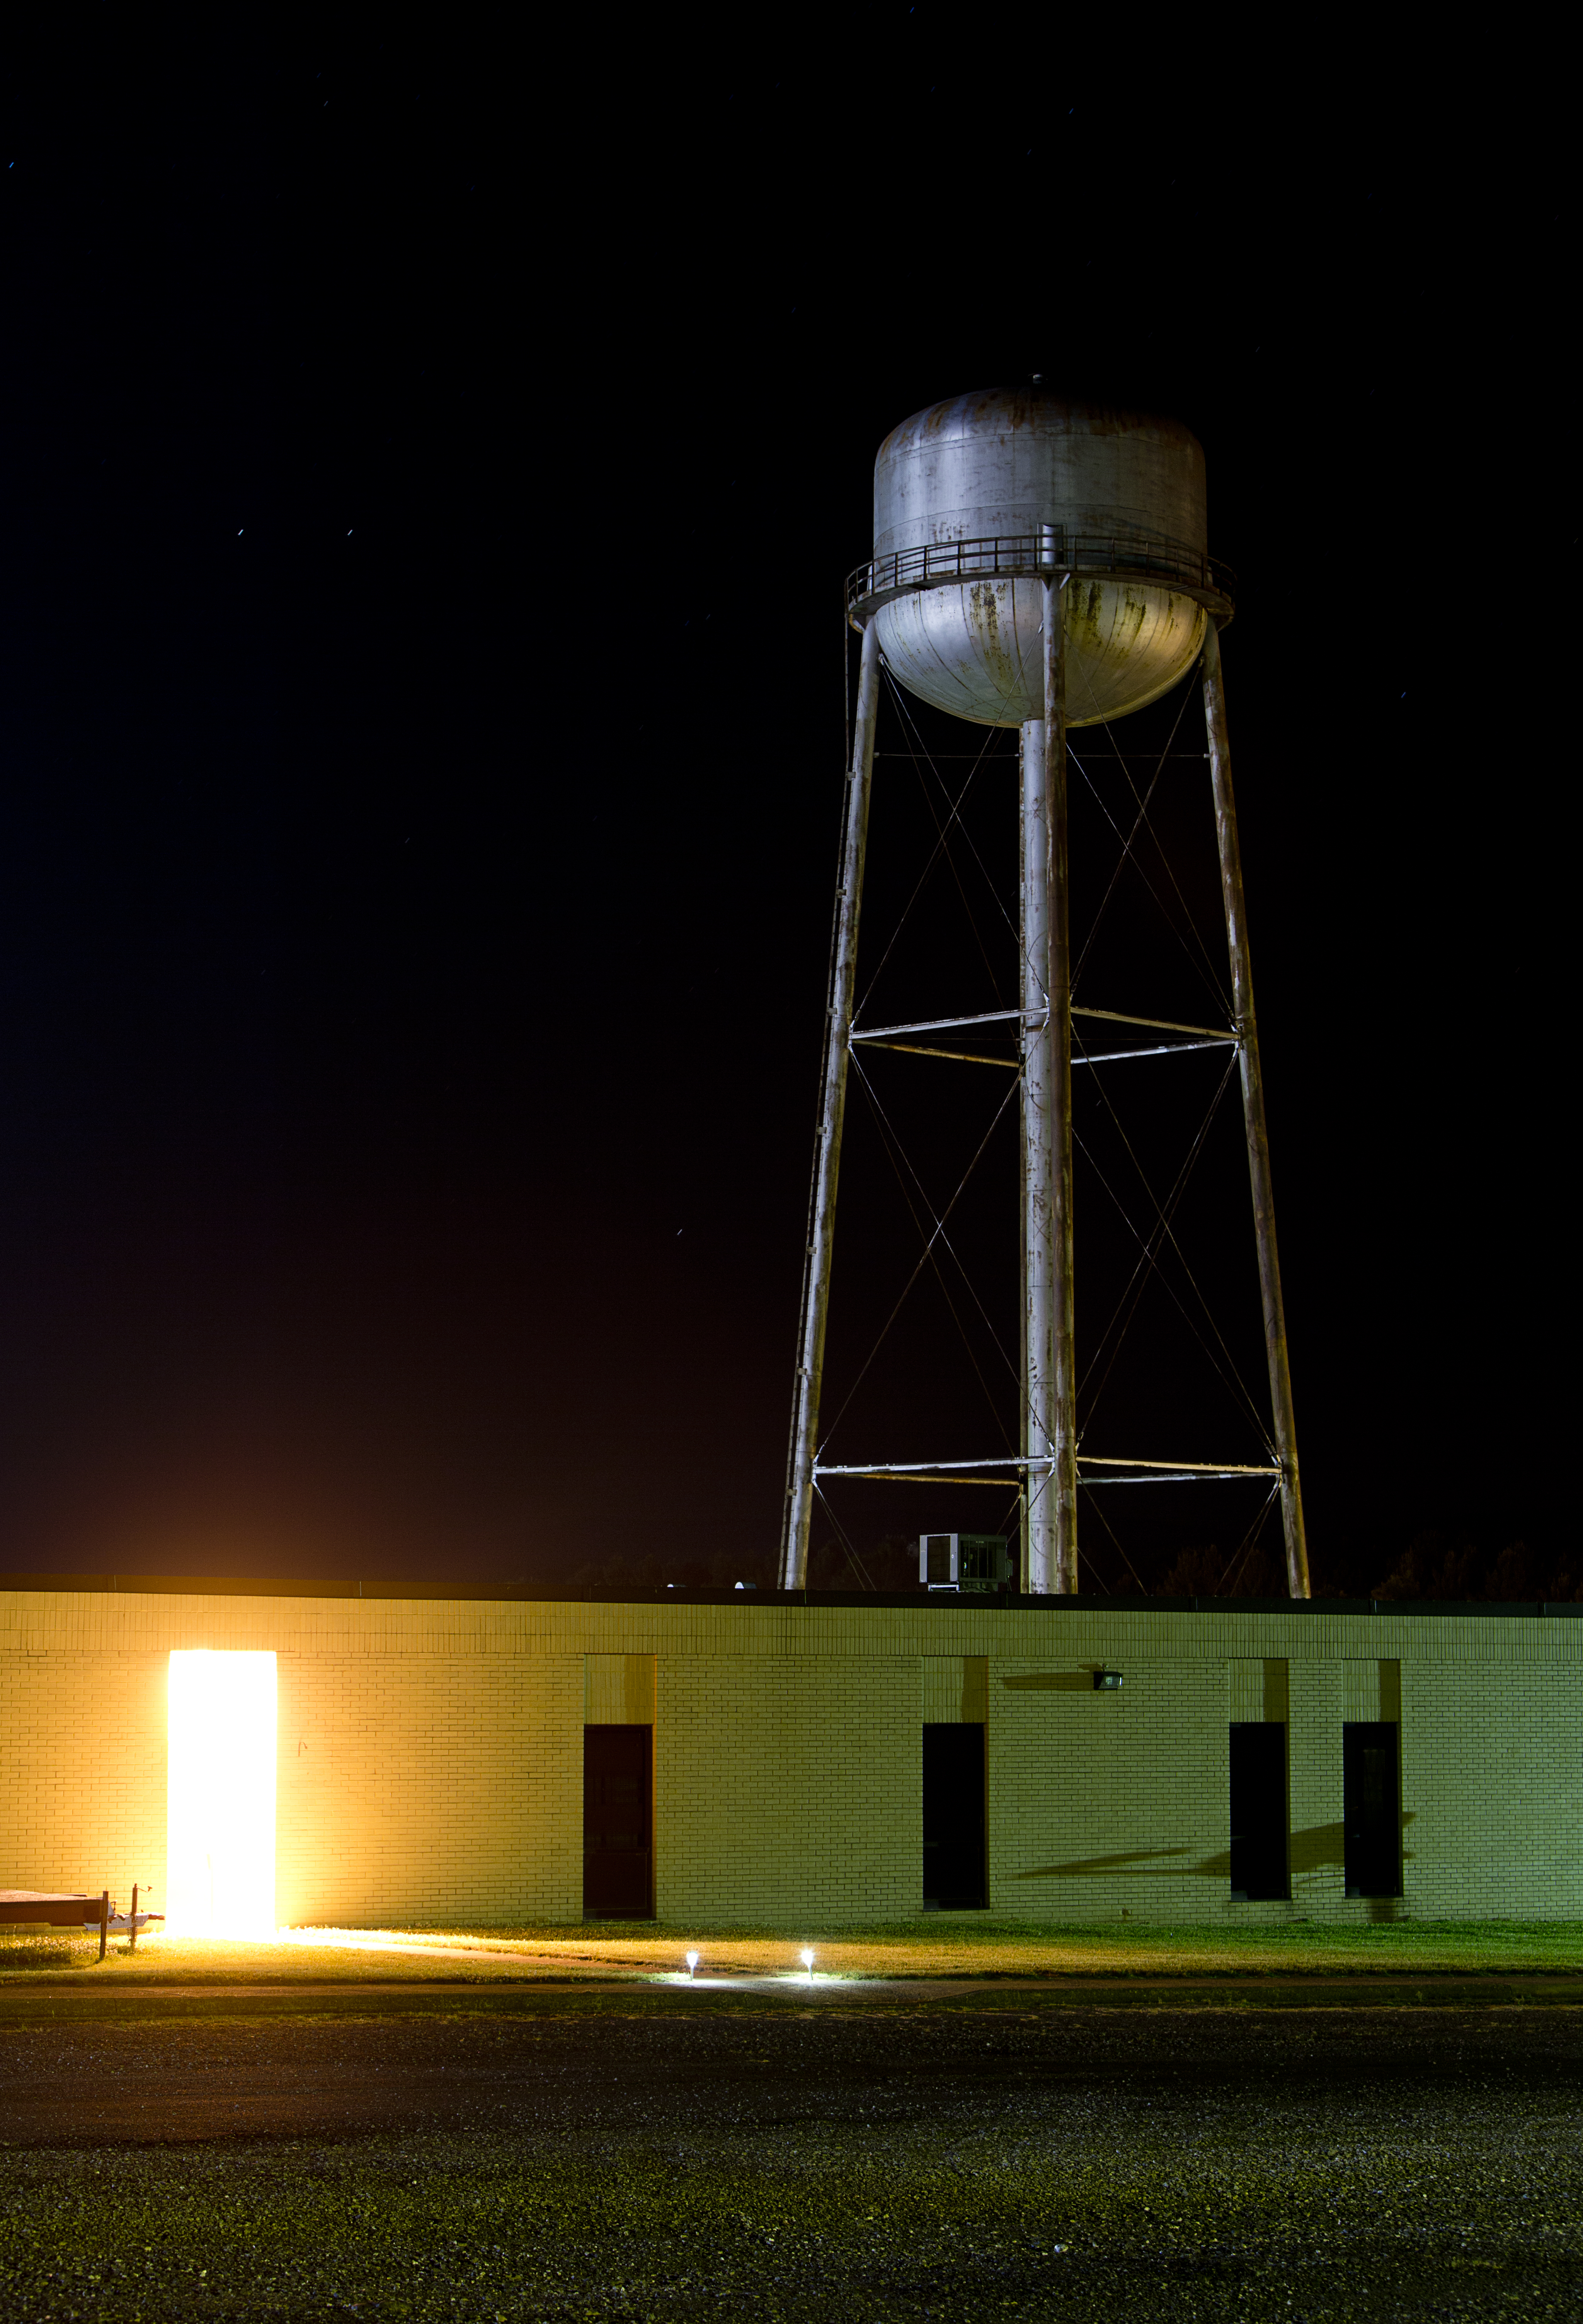 After Dark - Water Tower